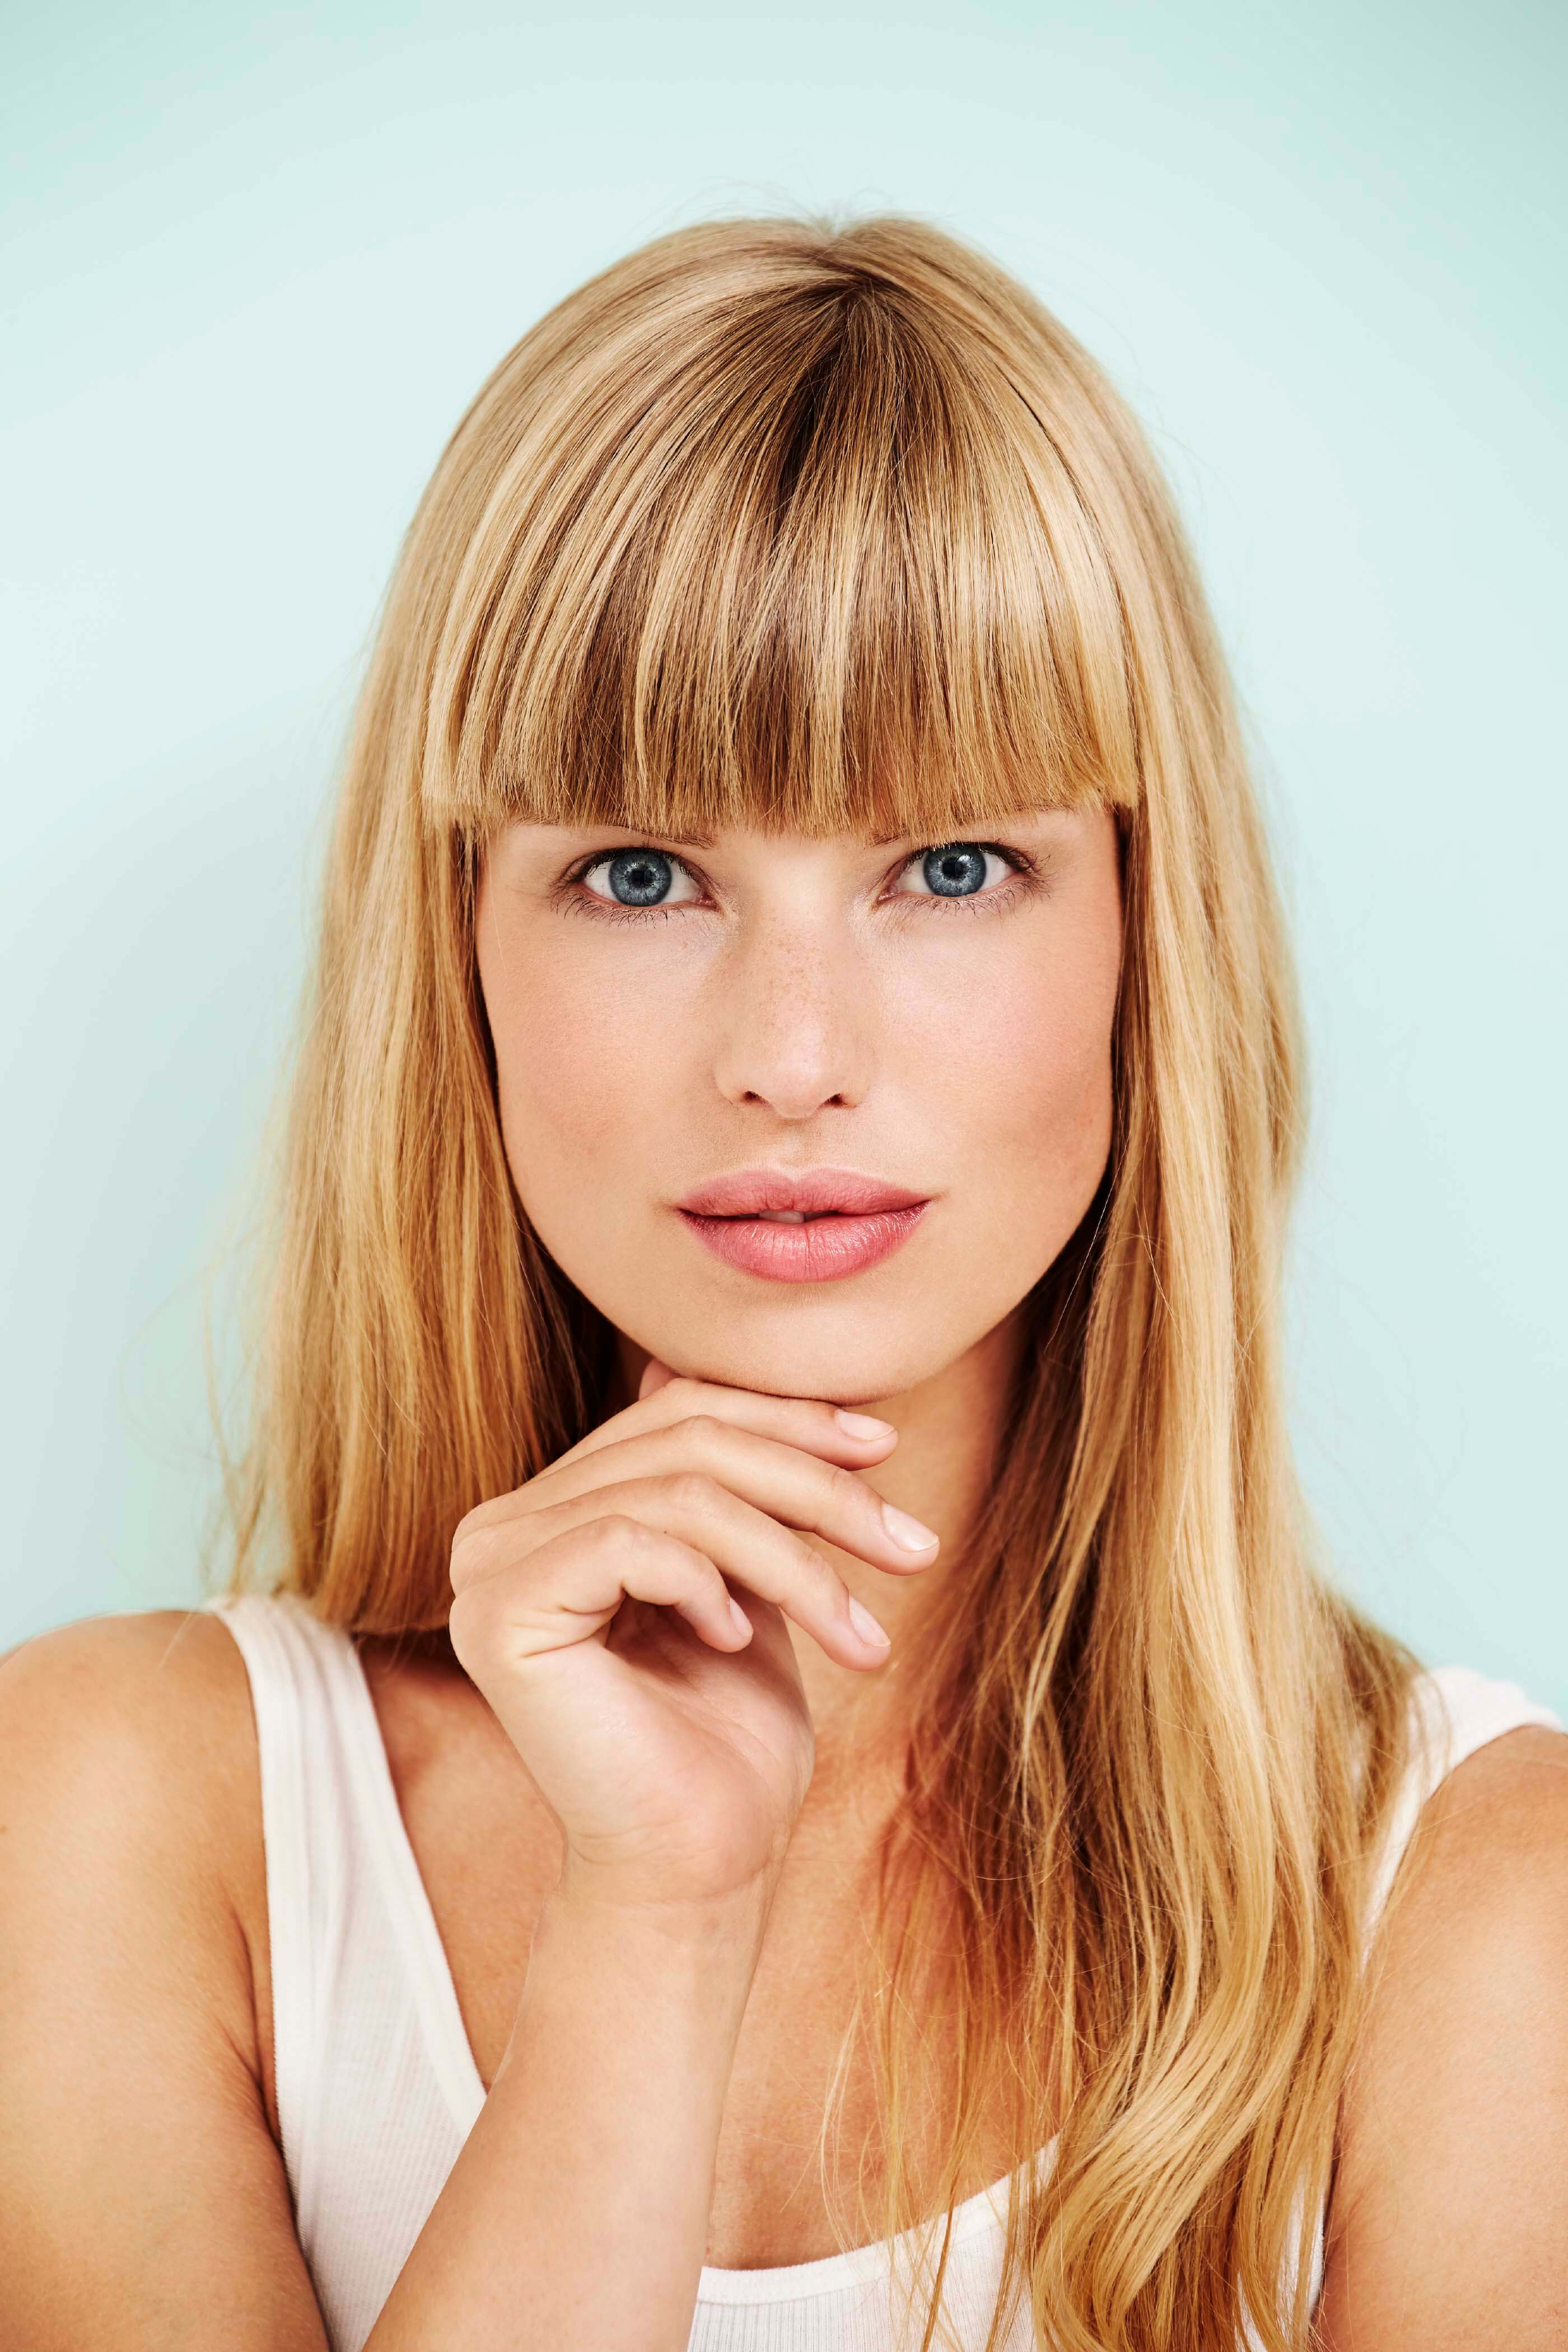 model with blonde hair wearing a blunt fringe